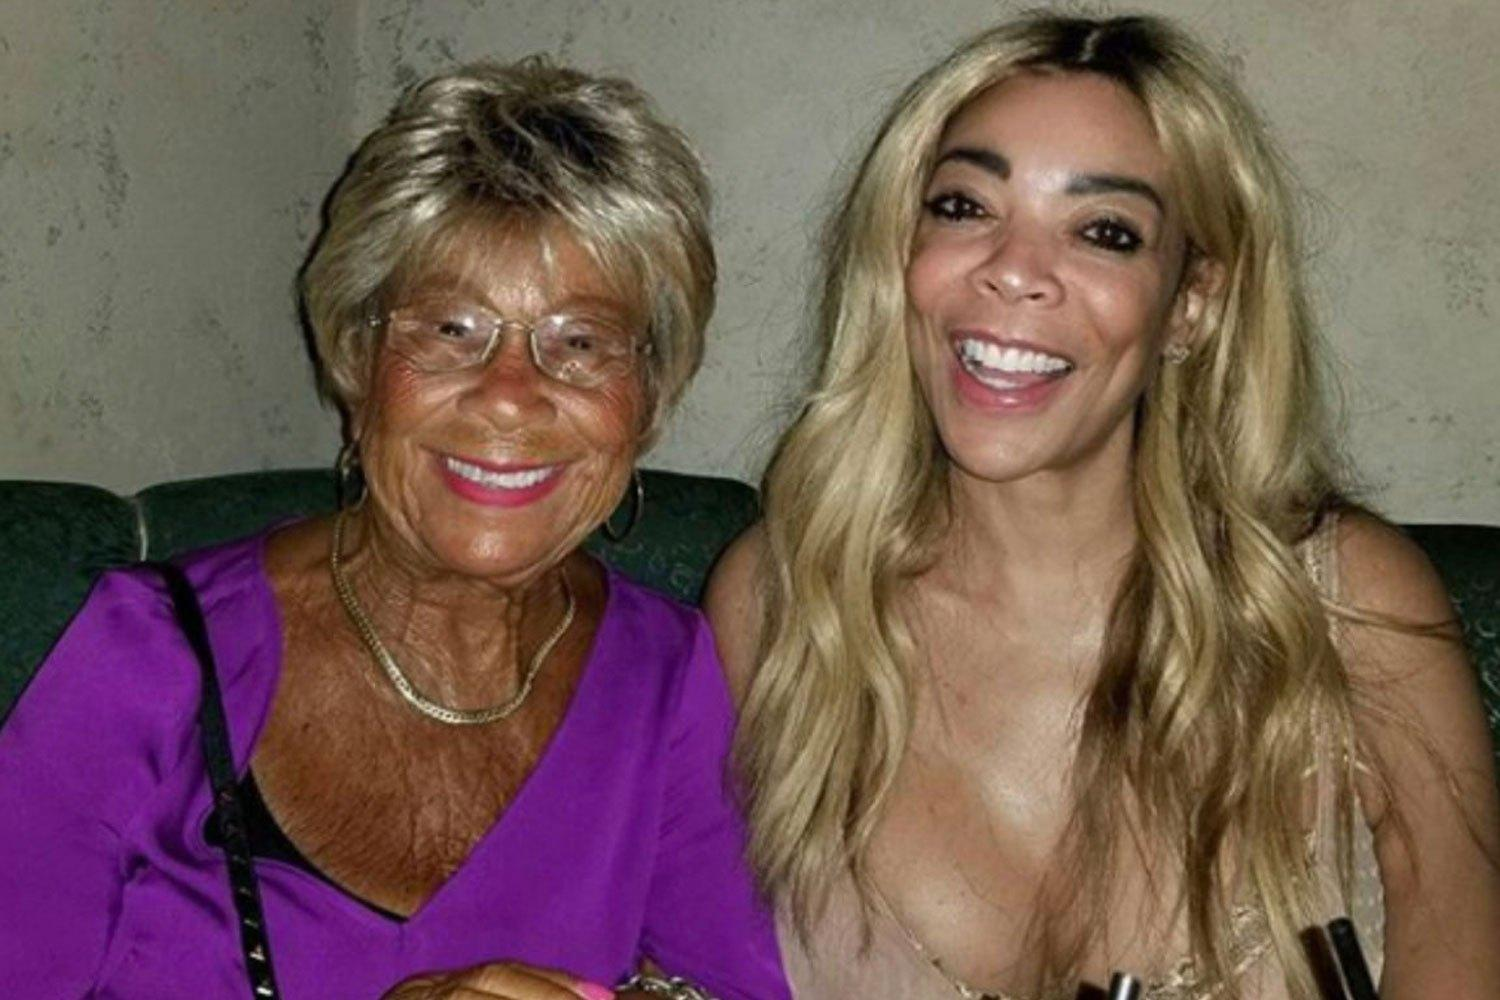 Wendy Williams Exposes Her Brother Tommy For Getting Into A Fistfight At Their Mother's Funeral After He Accused Her Of Skipping The Service!